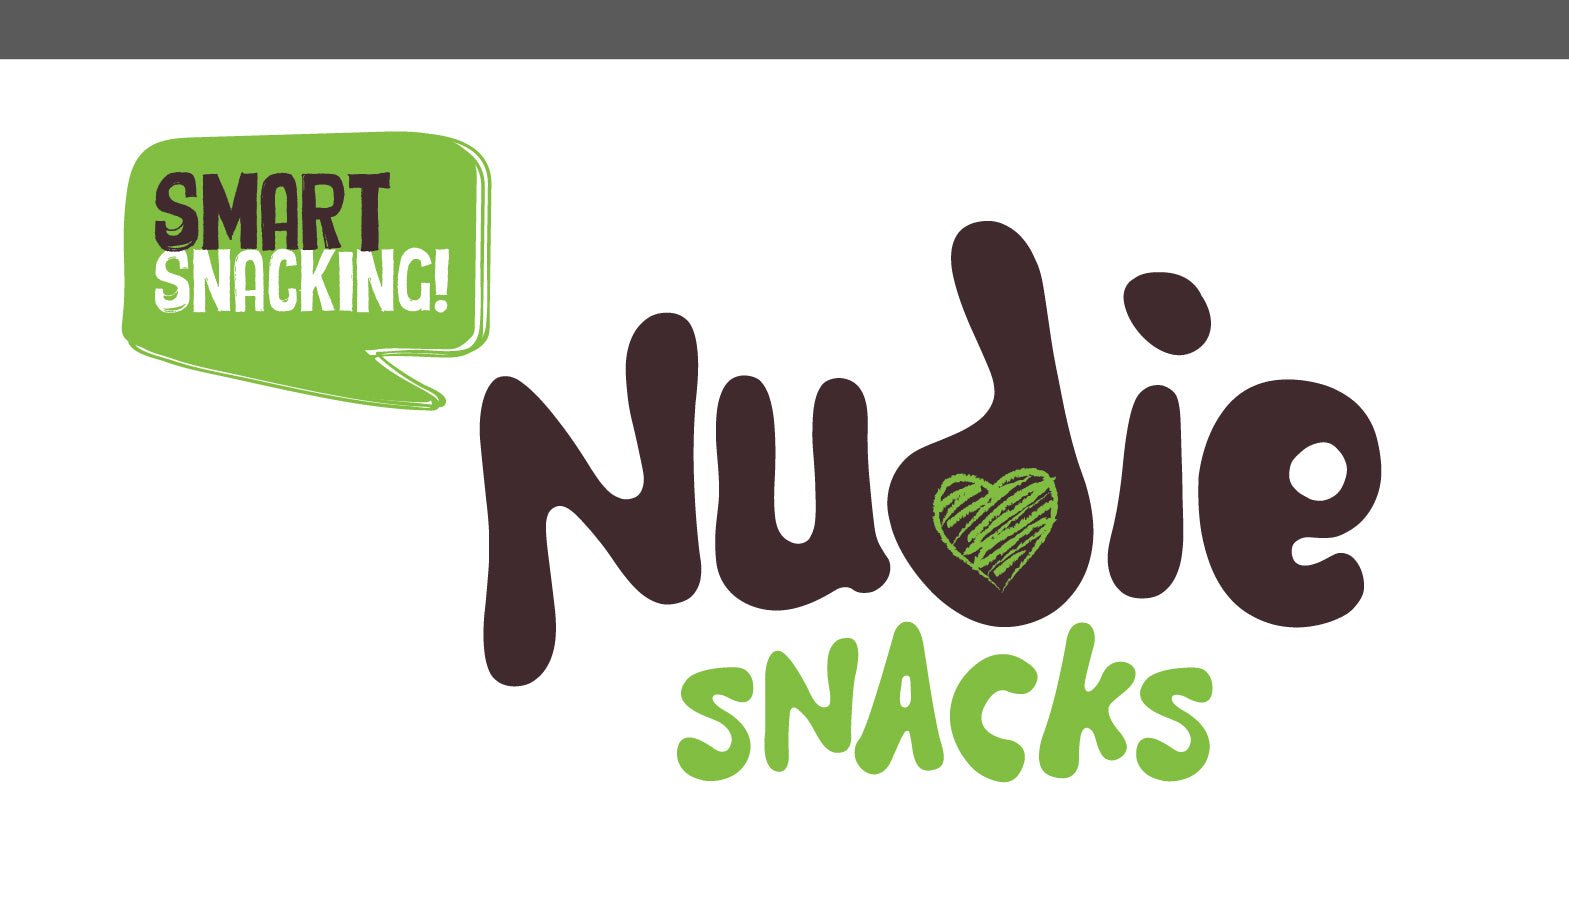 Nudie healthy snack products in Healthy Nibbles snack boxes